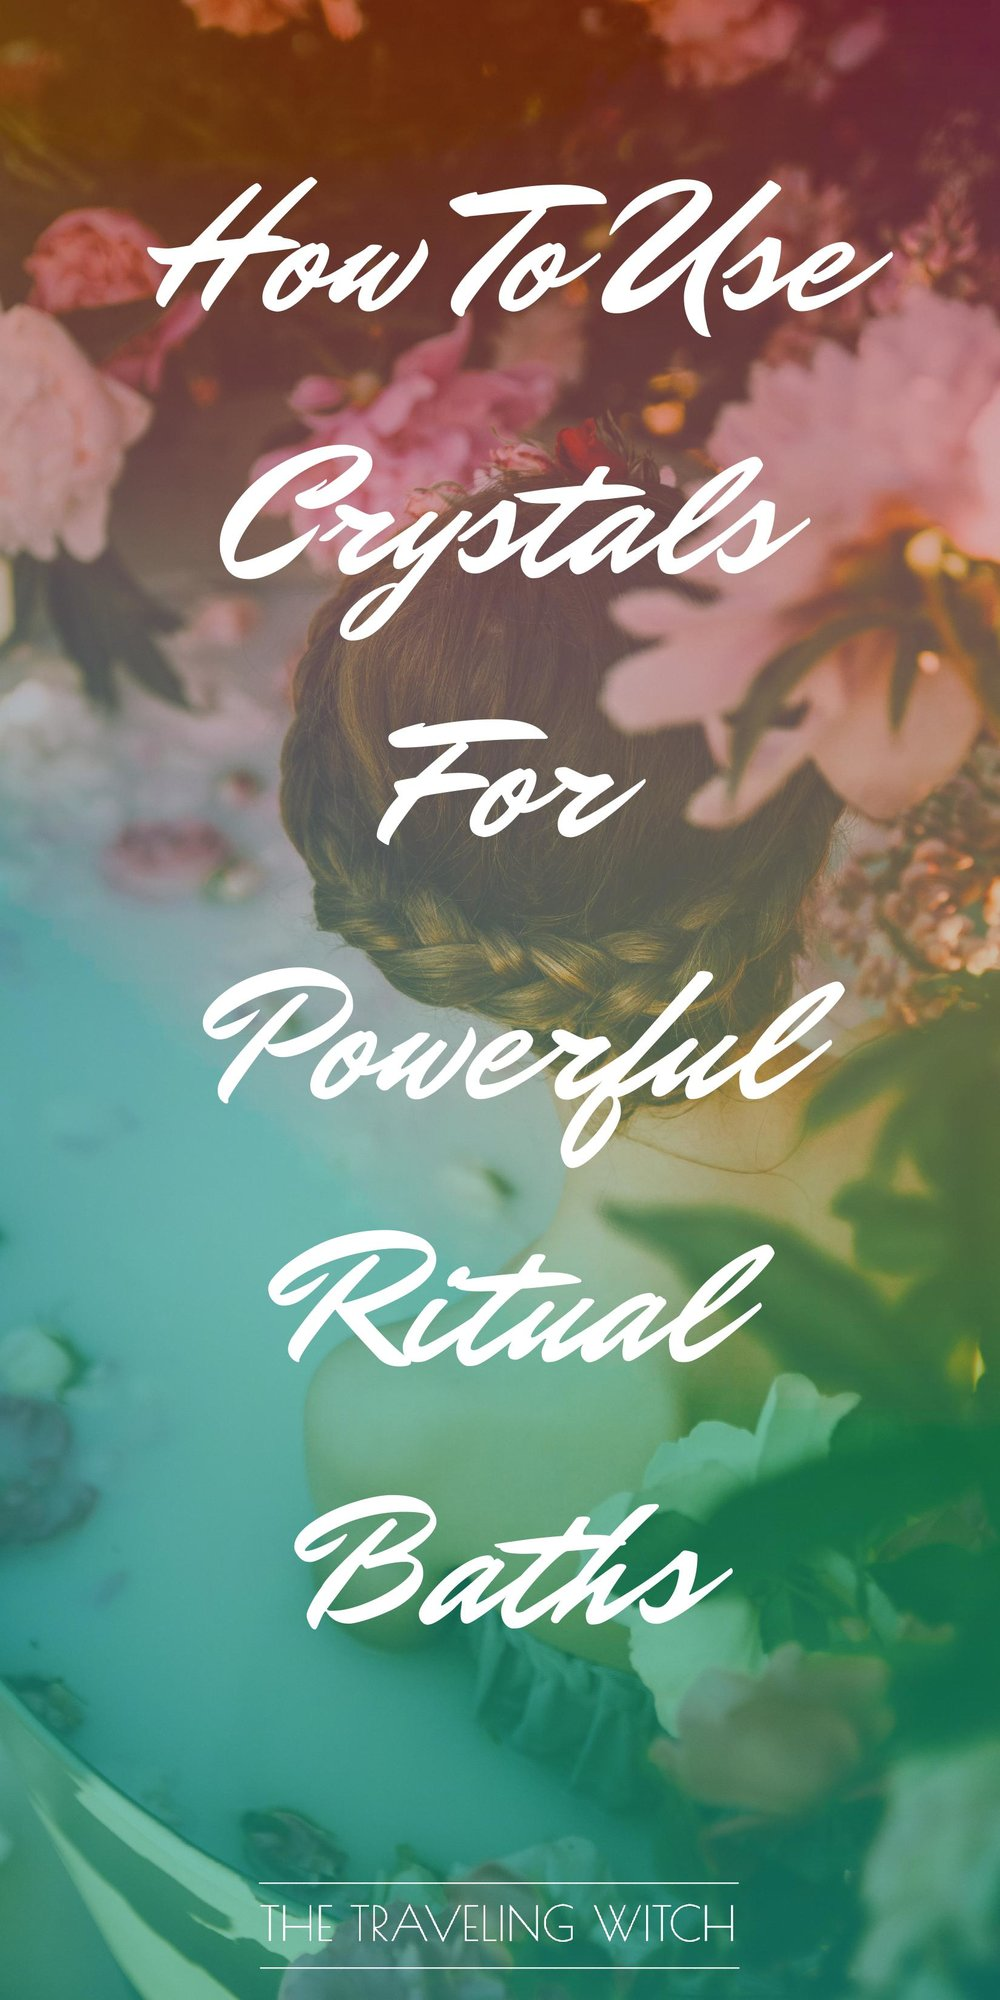 How To Use Crystals For Powerful Ritual Baths // Witchcraft // Magic // The Traveling Witch